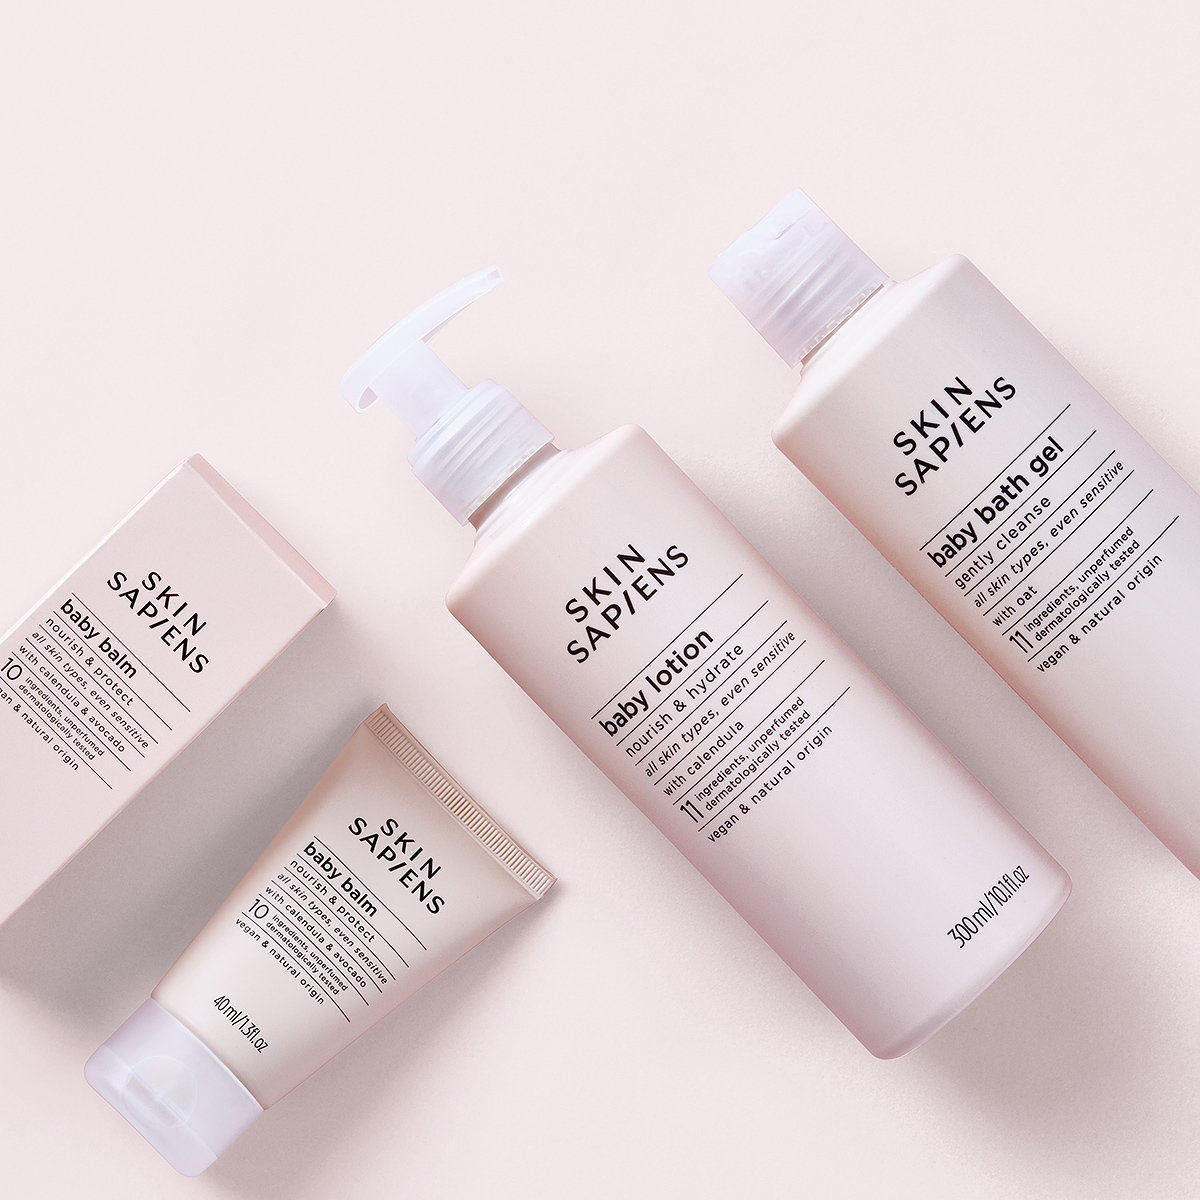 Lewis Moberly Designs Identity and Eco-packaging for Skin Sapiens